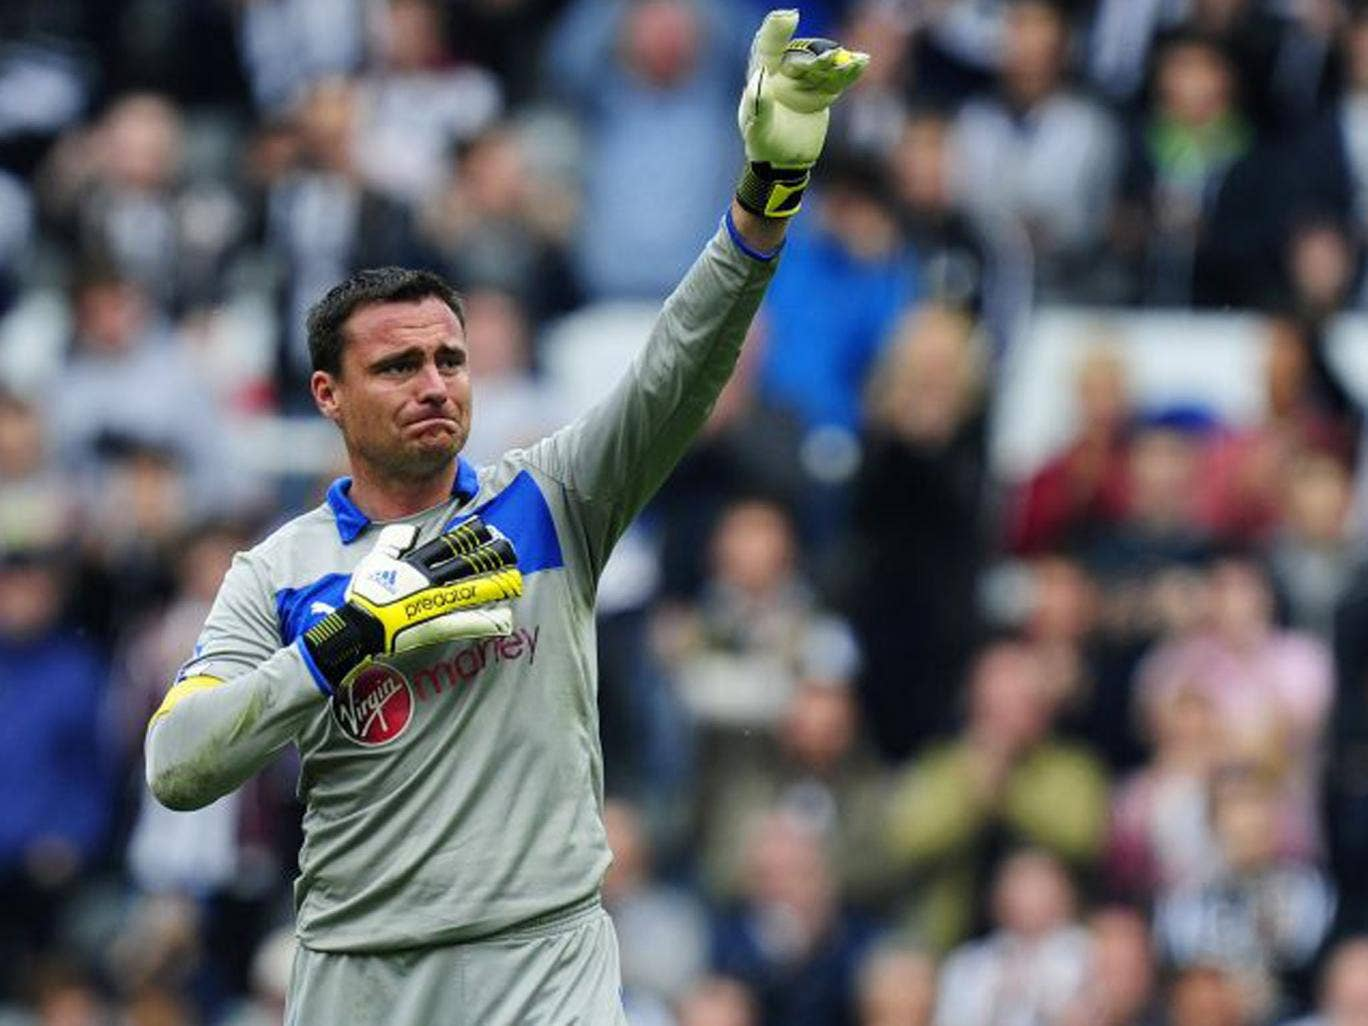 Steve Harper, the Newcastle goalkeeper, bid an emotional farewell to the fans at St James' Park in his final game (Stu Forster/Getty Images)